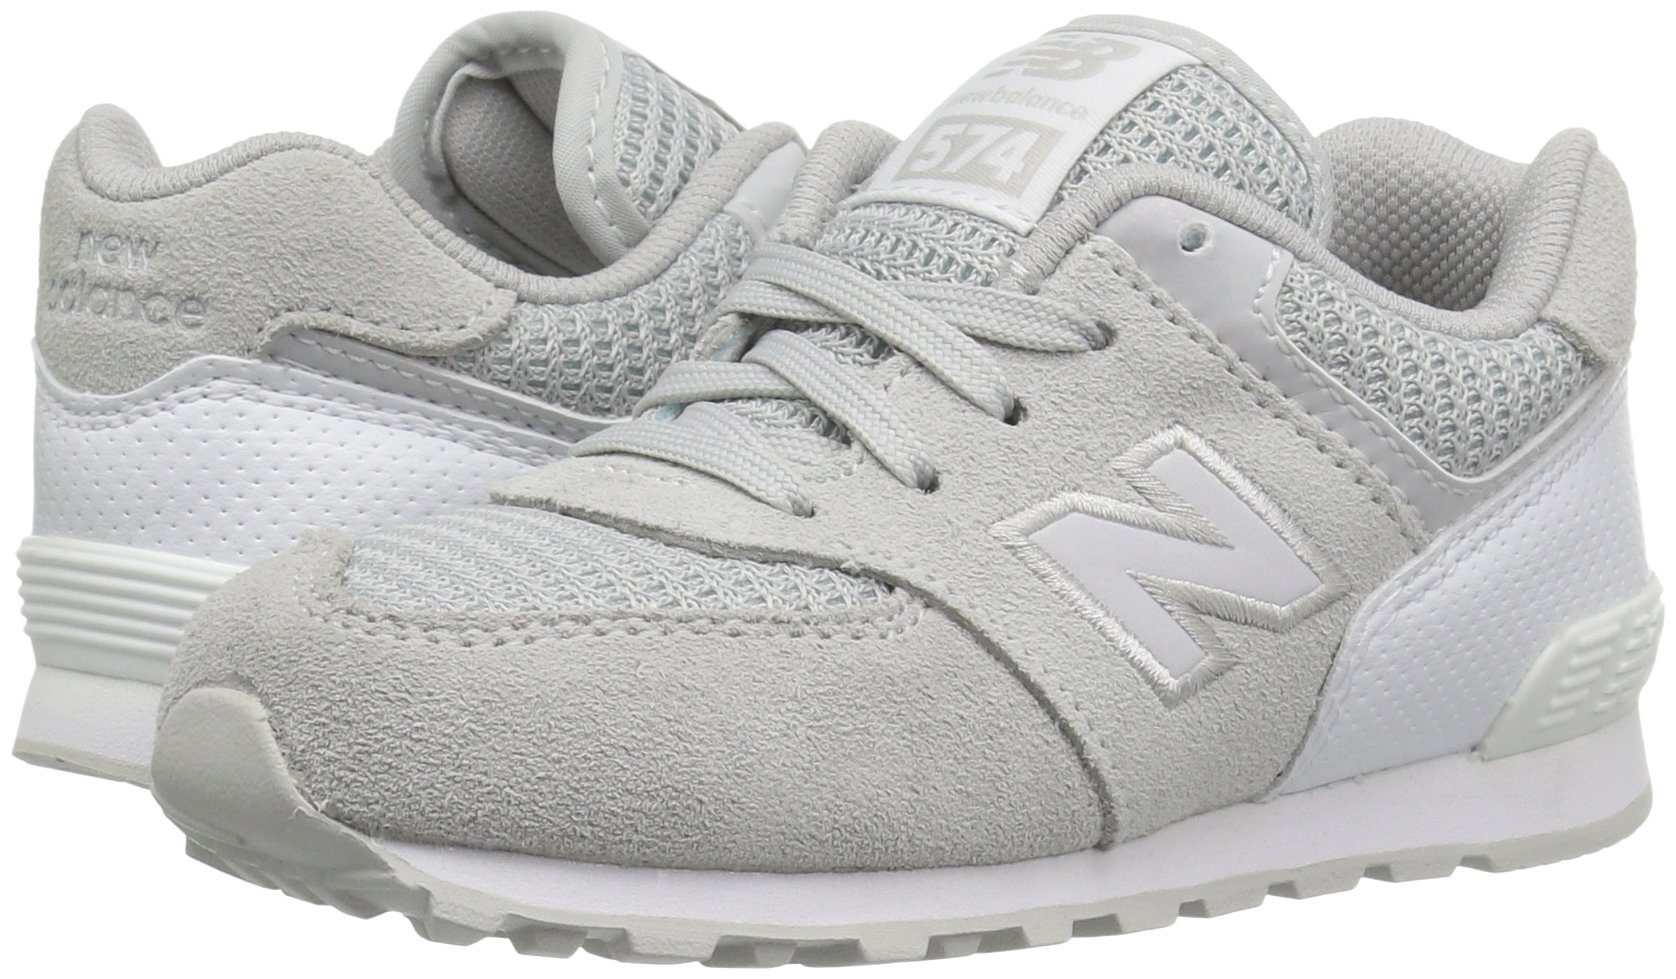 574 GREY ICON - FOOTWEAR - Low-tops & sneakers New Balance nbwQhwrT